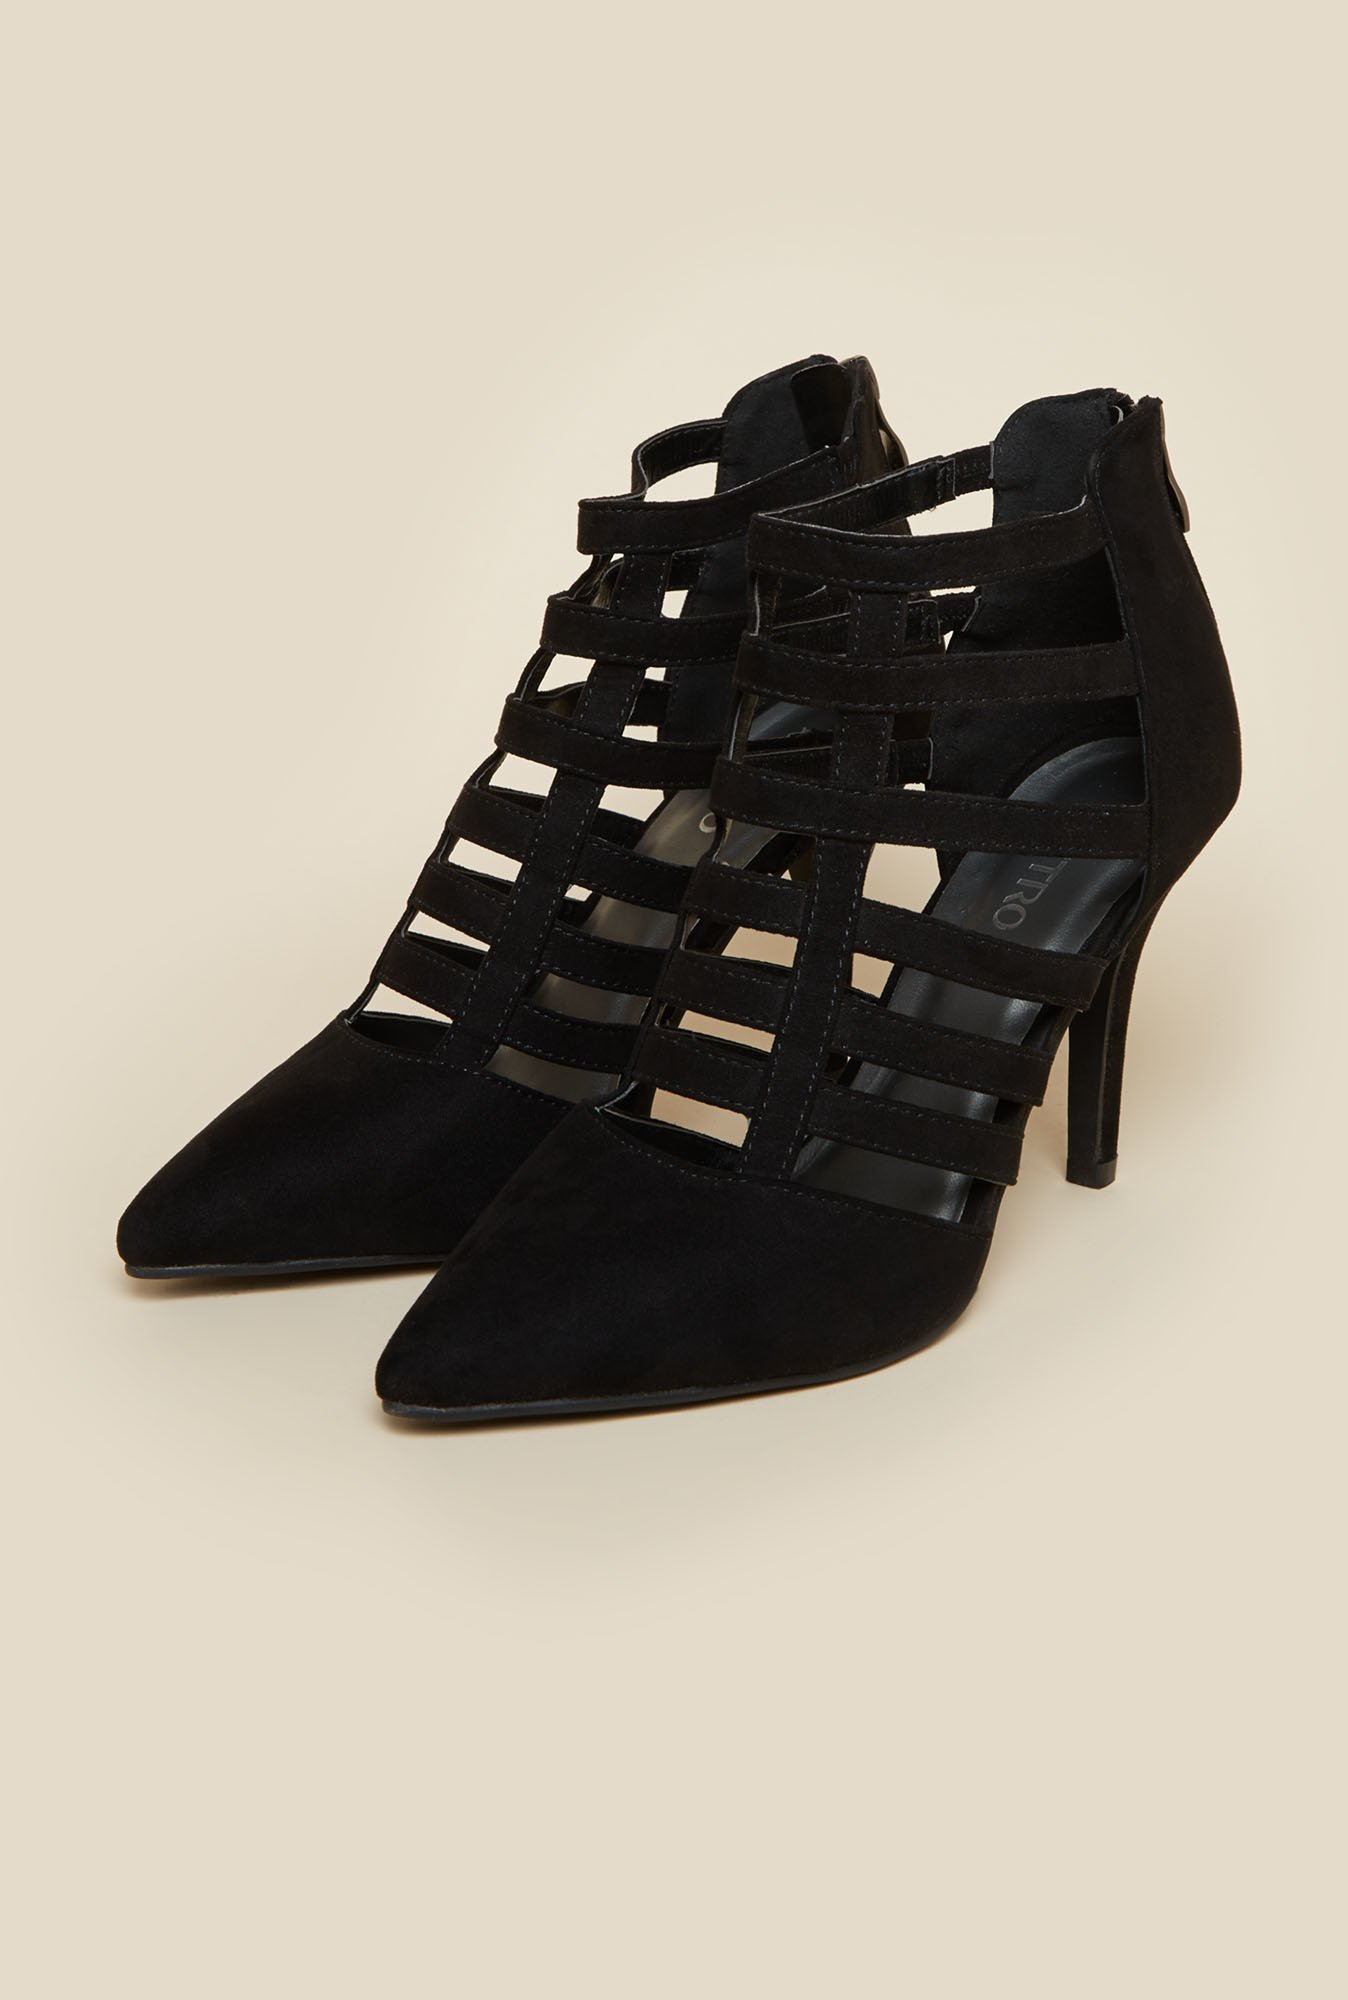 Metro Black Caged Heel Sandals